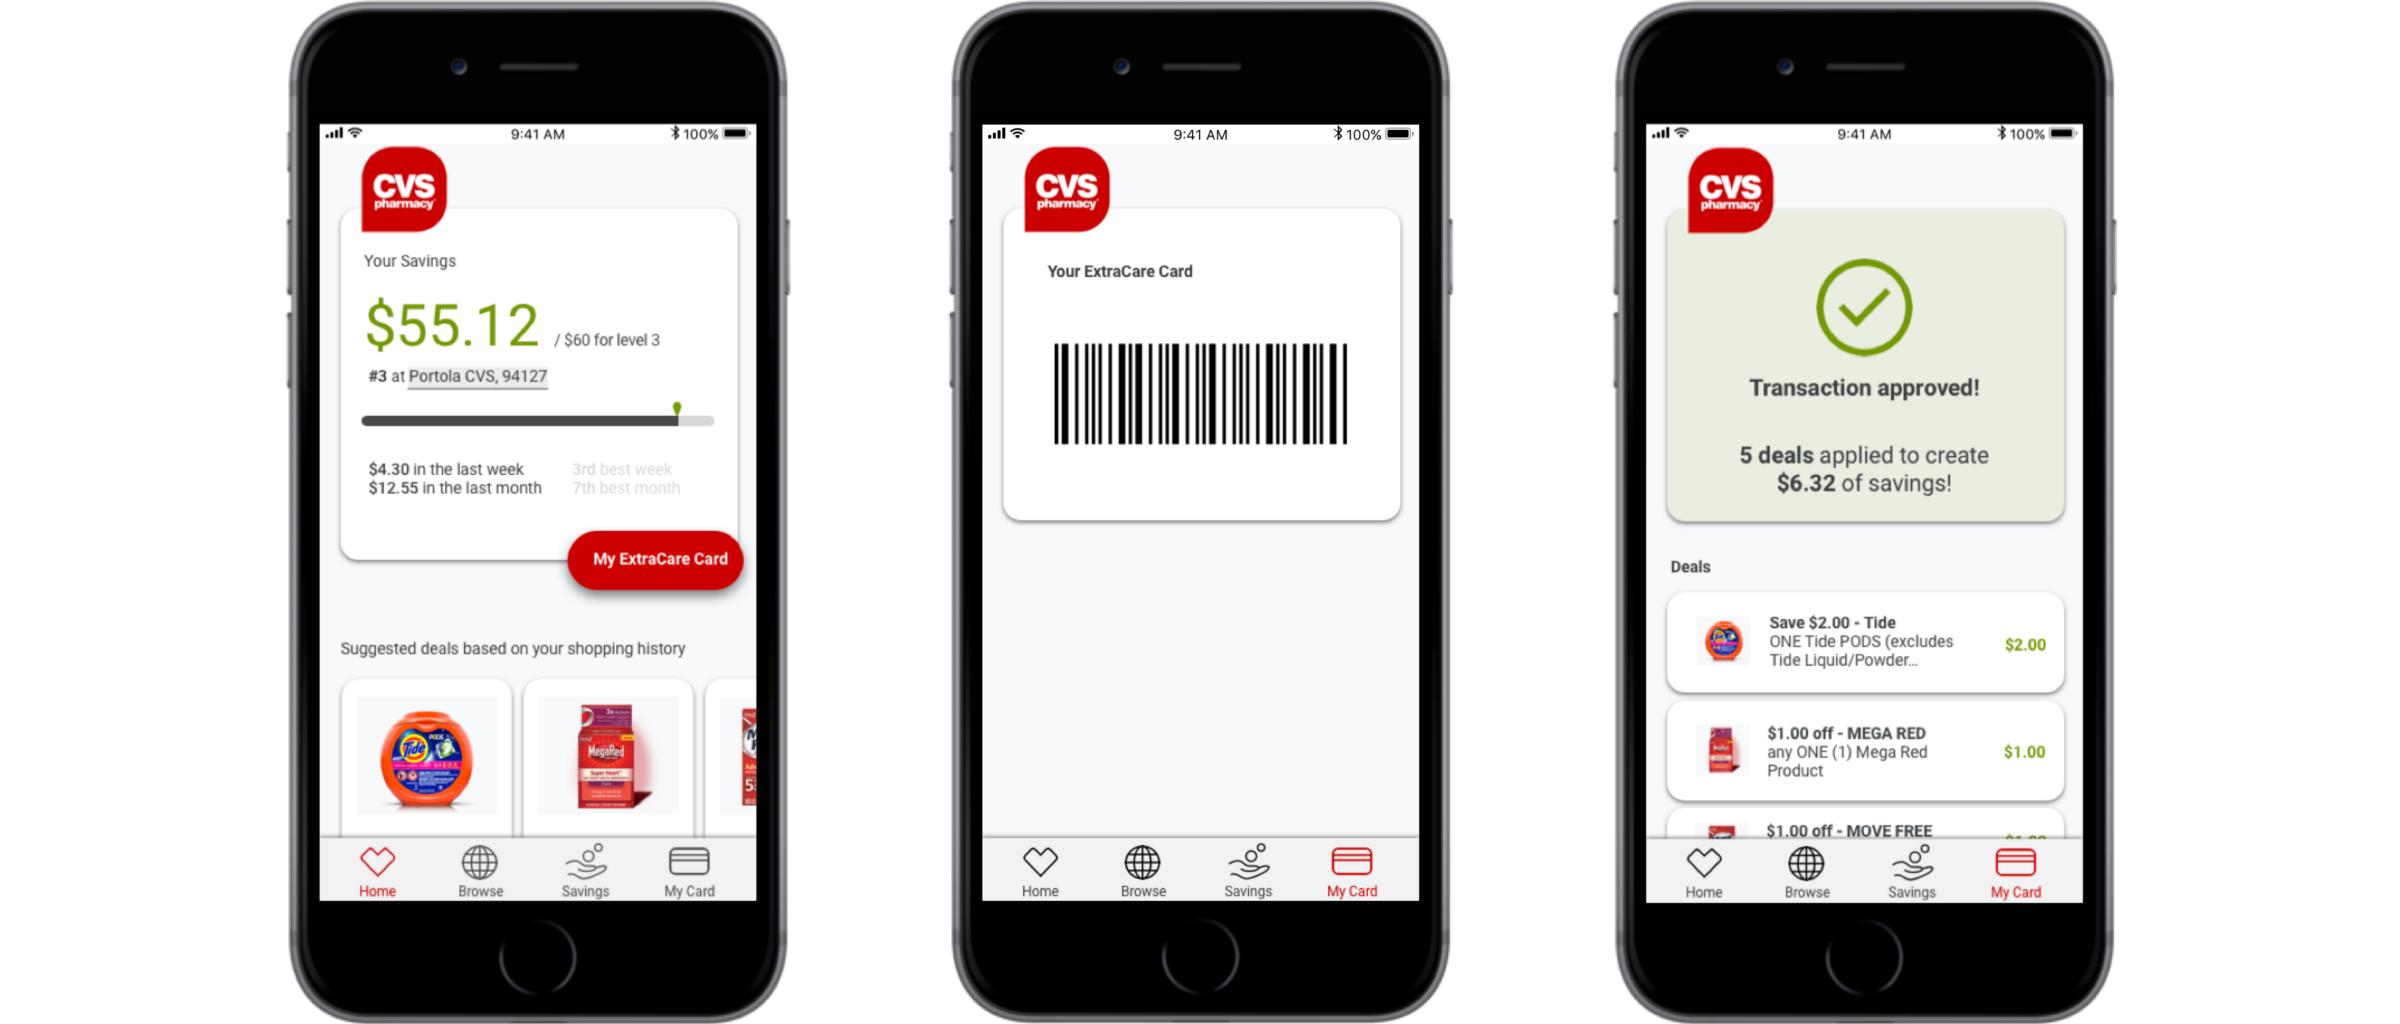 45c8eb83 A modified CVS ExtraCare app may look something like this: (from left to  right) dashboard that incentivizes saving, card, and validation of coupons.